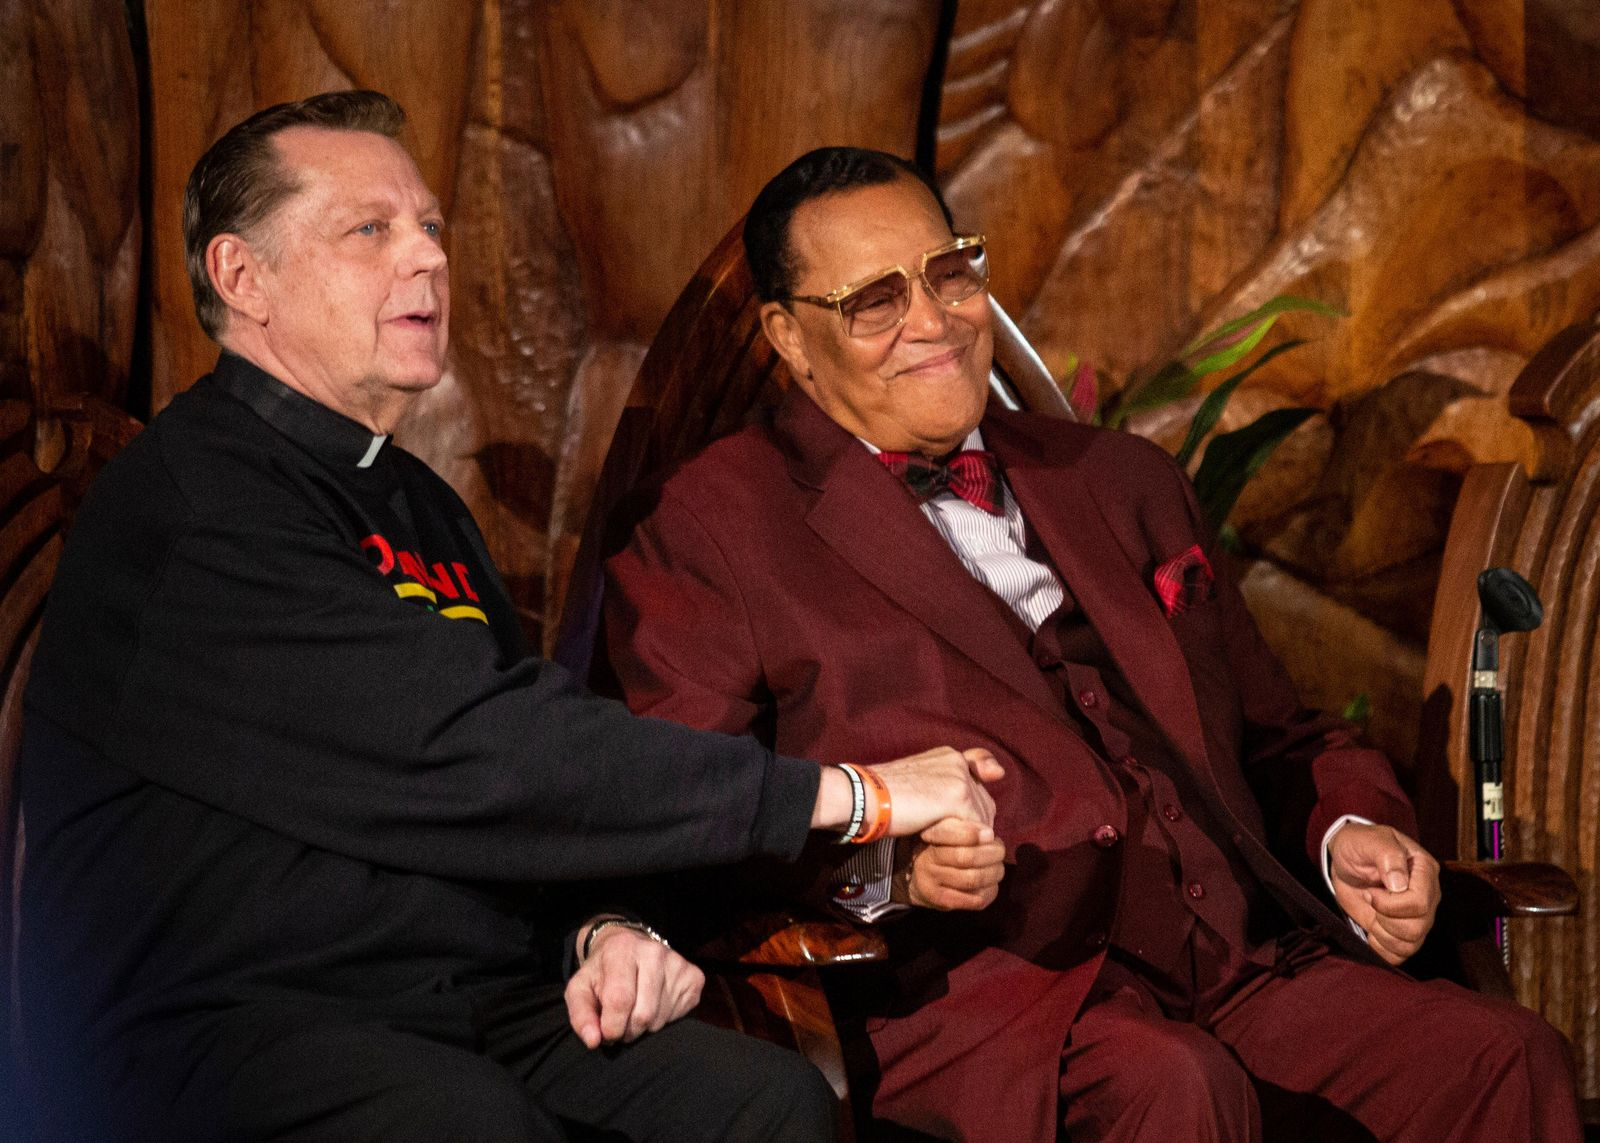 Father Michael Pfleger sits next to Minister Louis Farrakhan, of the Nation of Islam, before they both speak at Saint Sabina Church, Thursday night, May 9, 2019, in Chicago. (Ashlee Rezin/Chicago Sun-Times via AP)